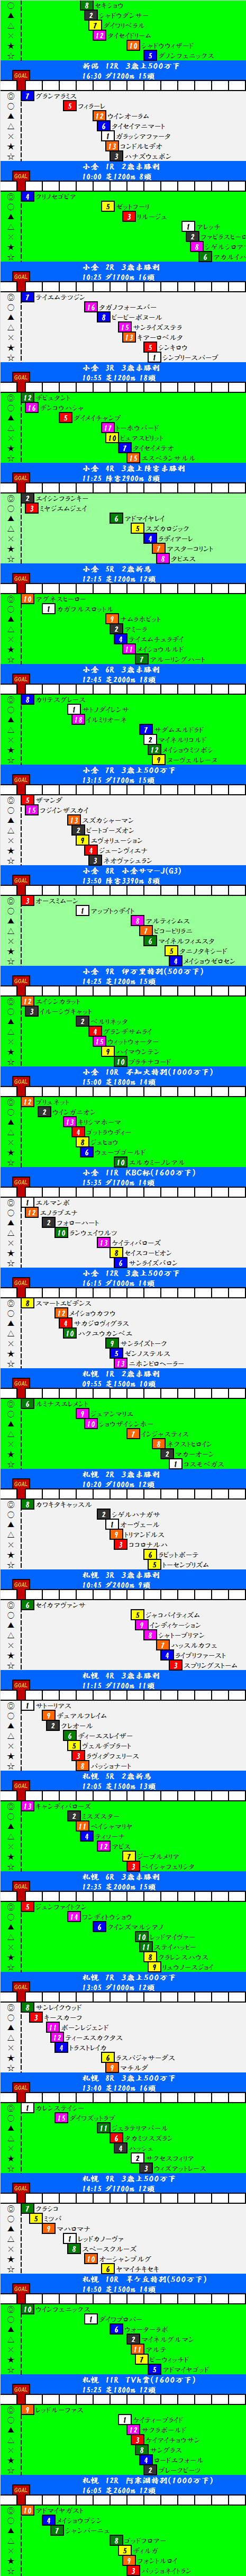 2015080102.png